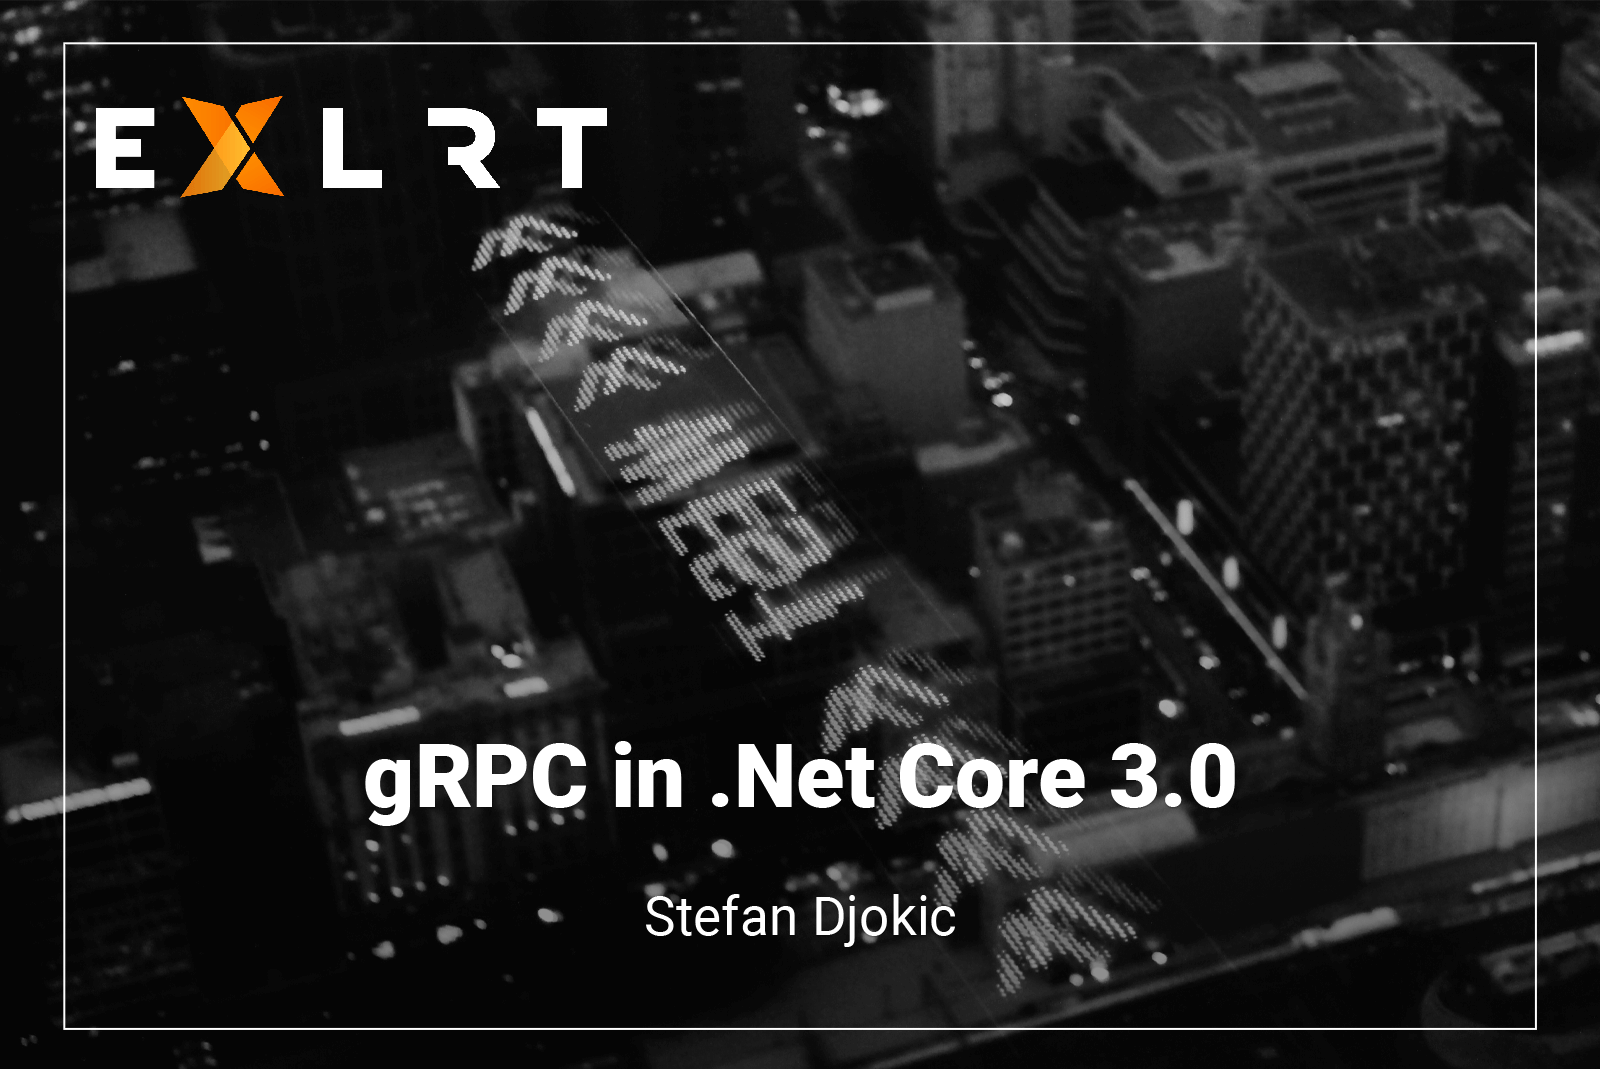 gRPC in .Net Core 3.0